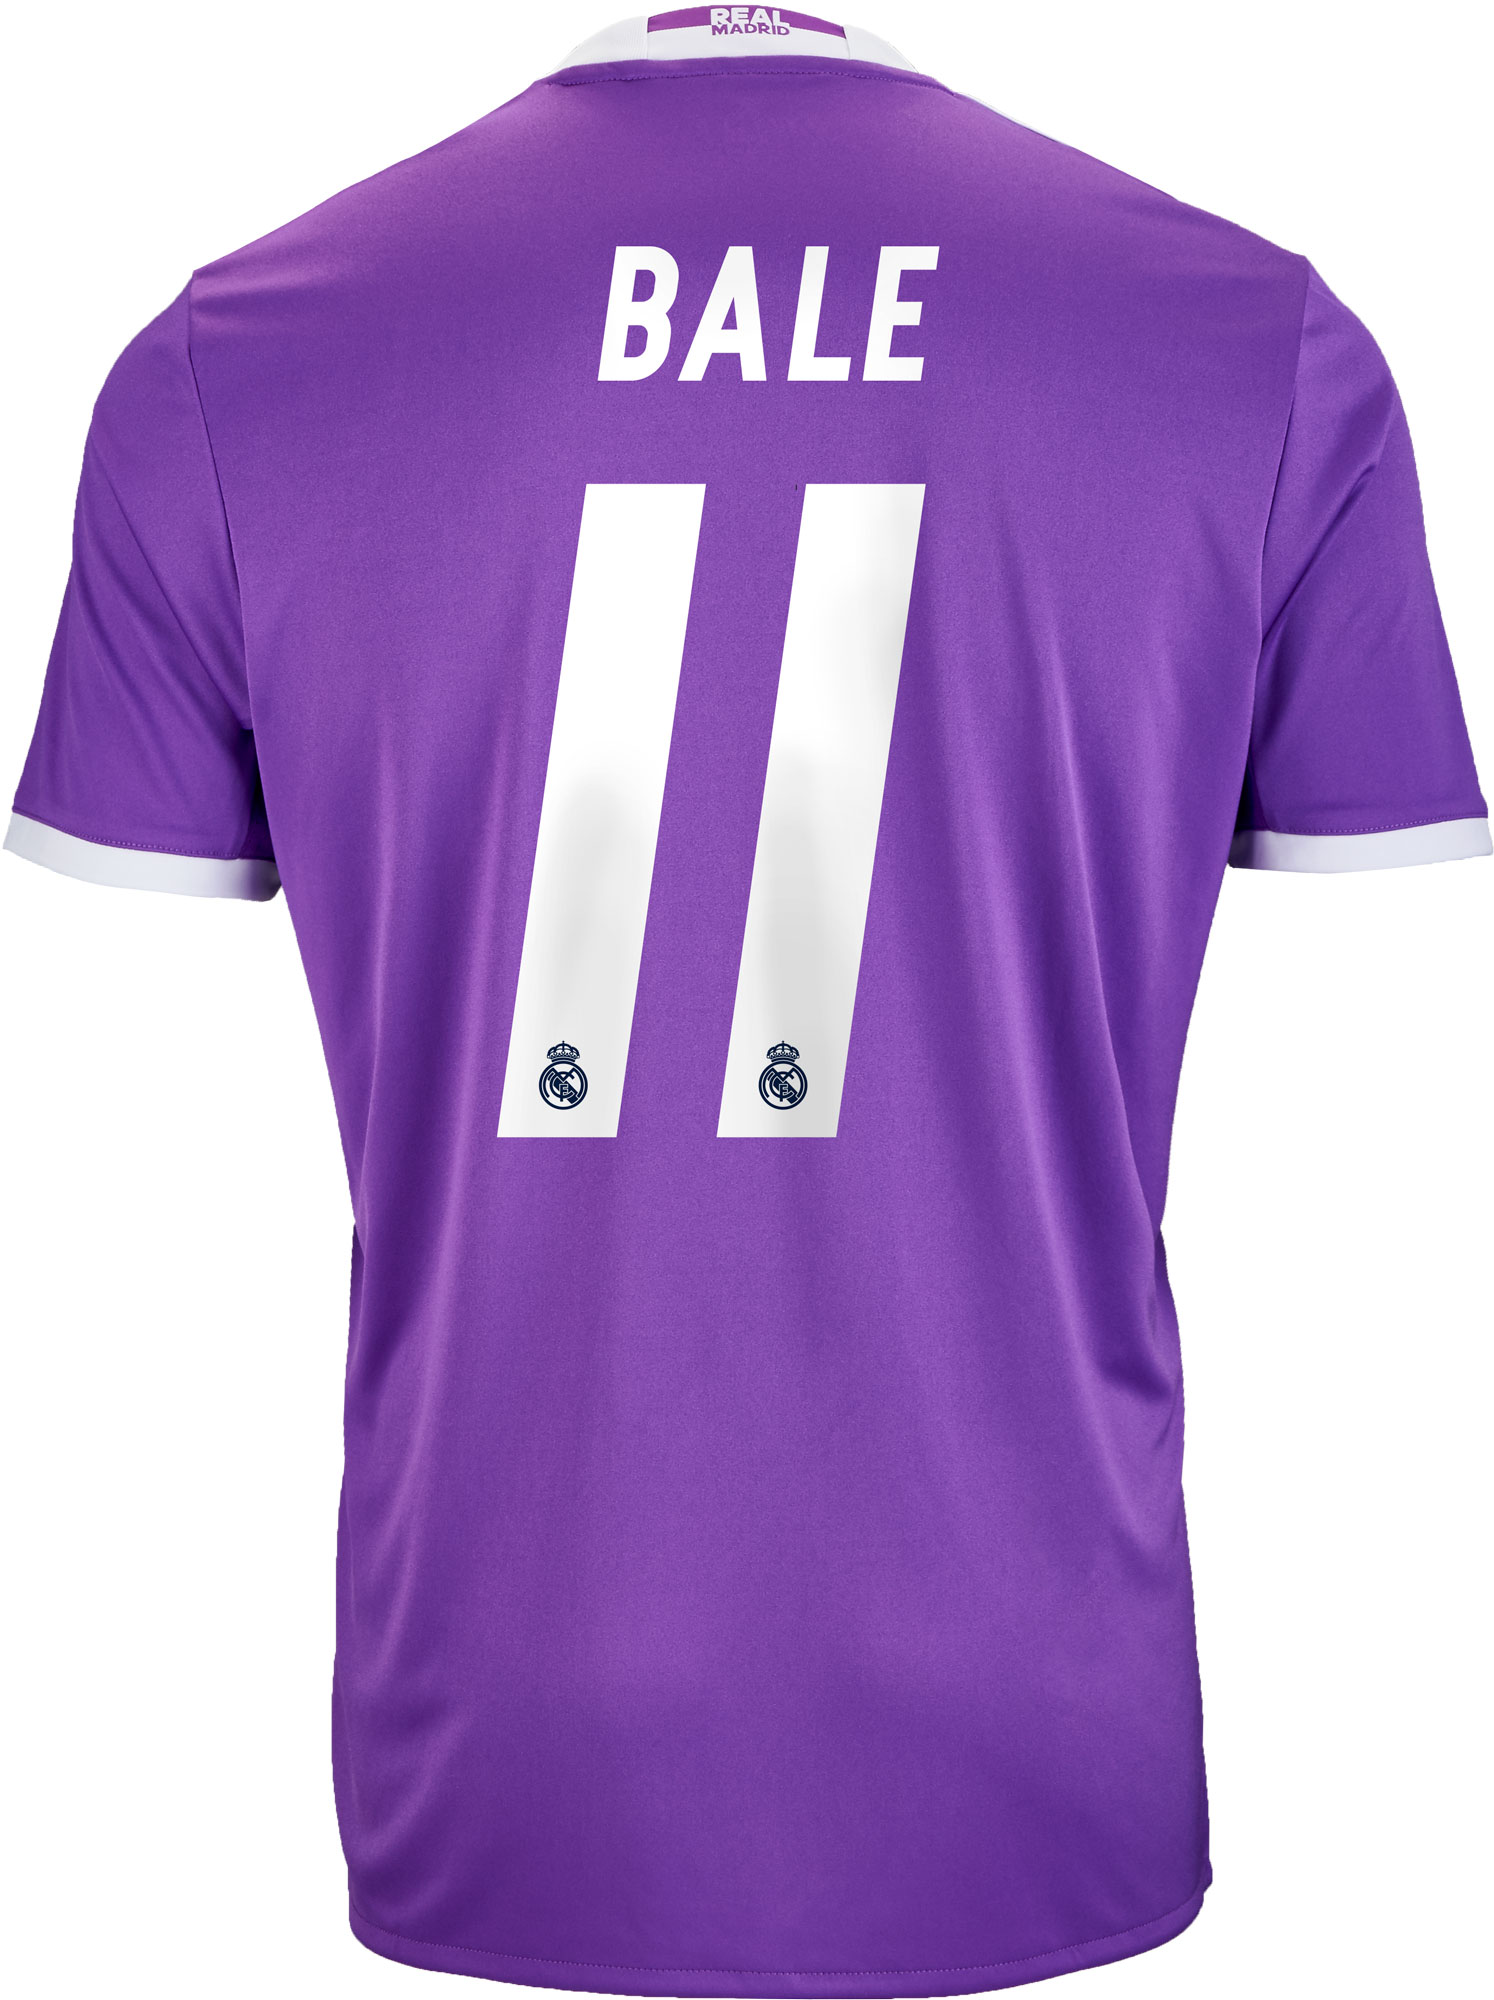 7066e5ebd adidas Bale Real Madrid Jersey - 2016 Real Madrid Jerseys